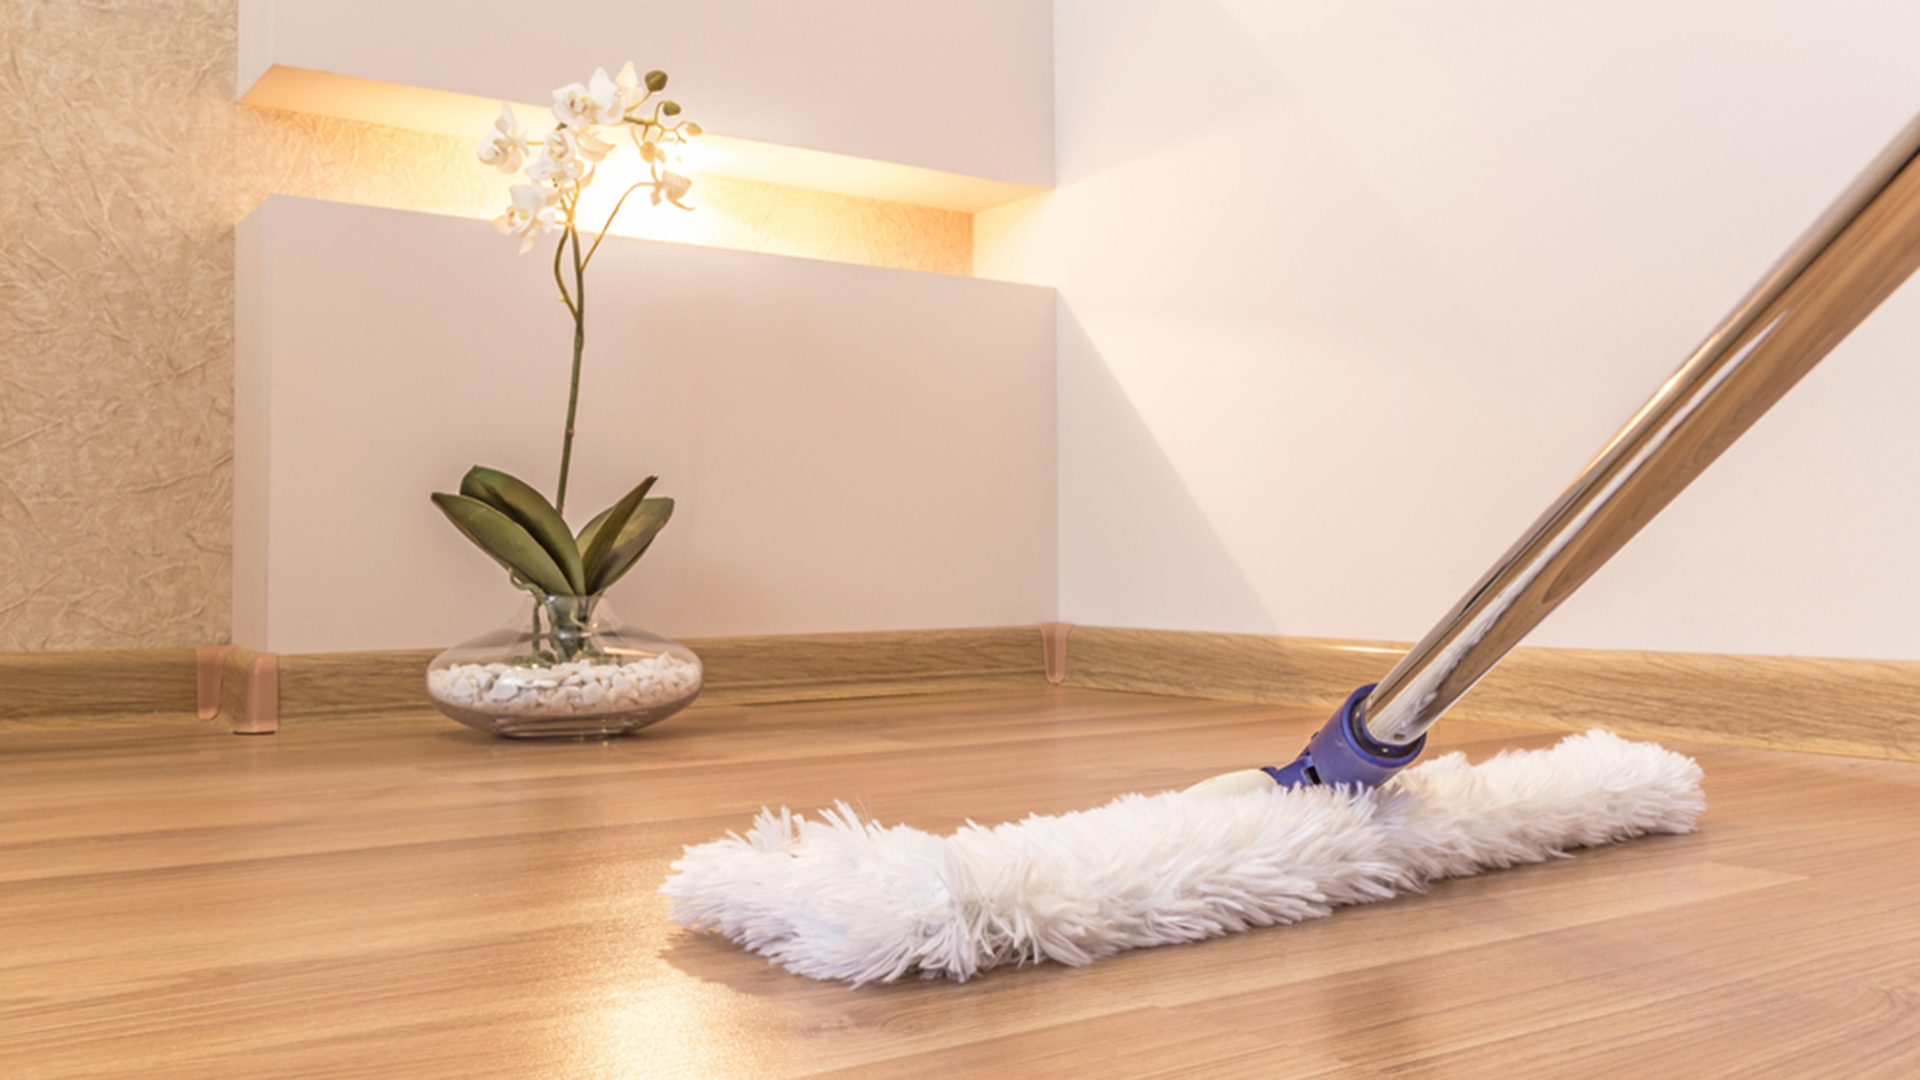 on best floors for wet laminate cleaner sweeper swiffer clean mop pergo is dry hardwood how use to floor what the cleaning